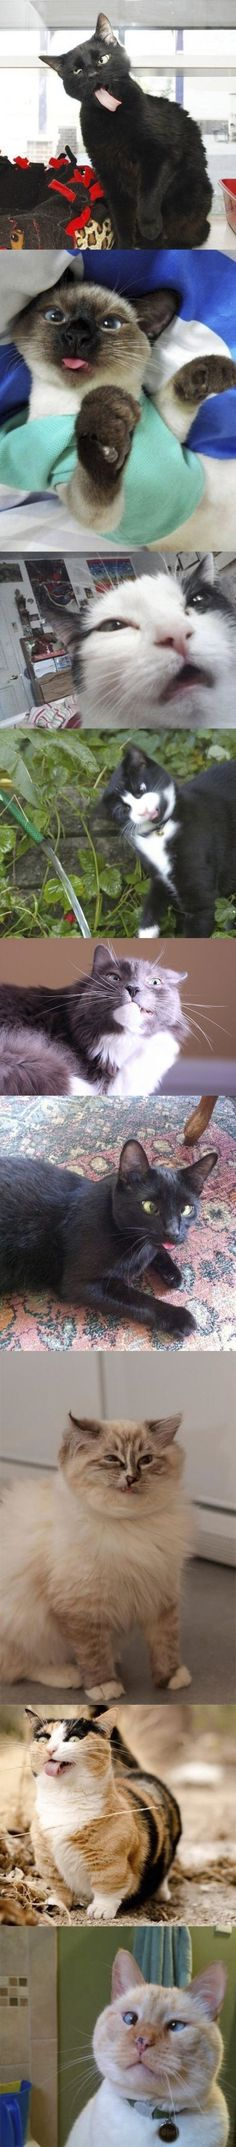 Cats have the best reactions.